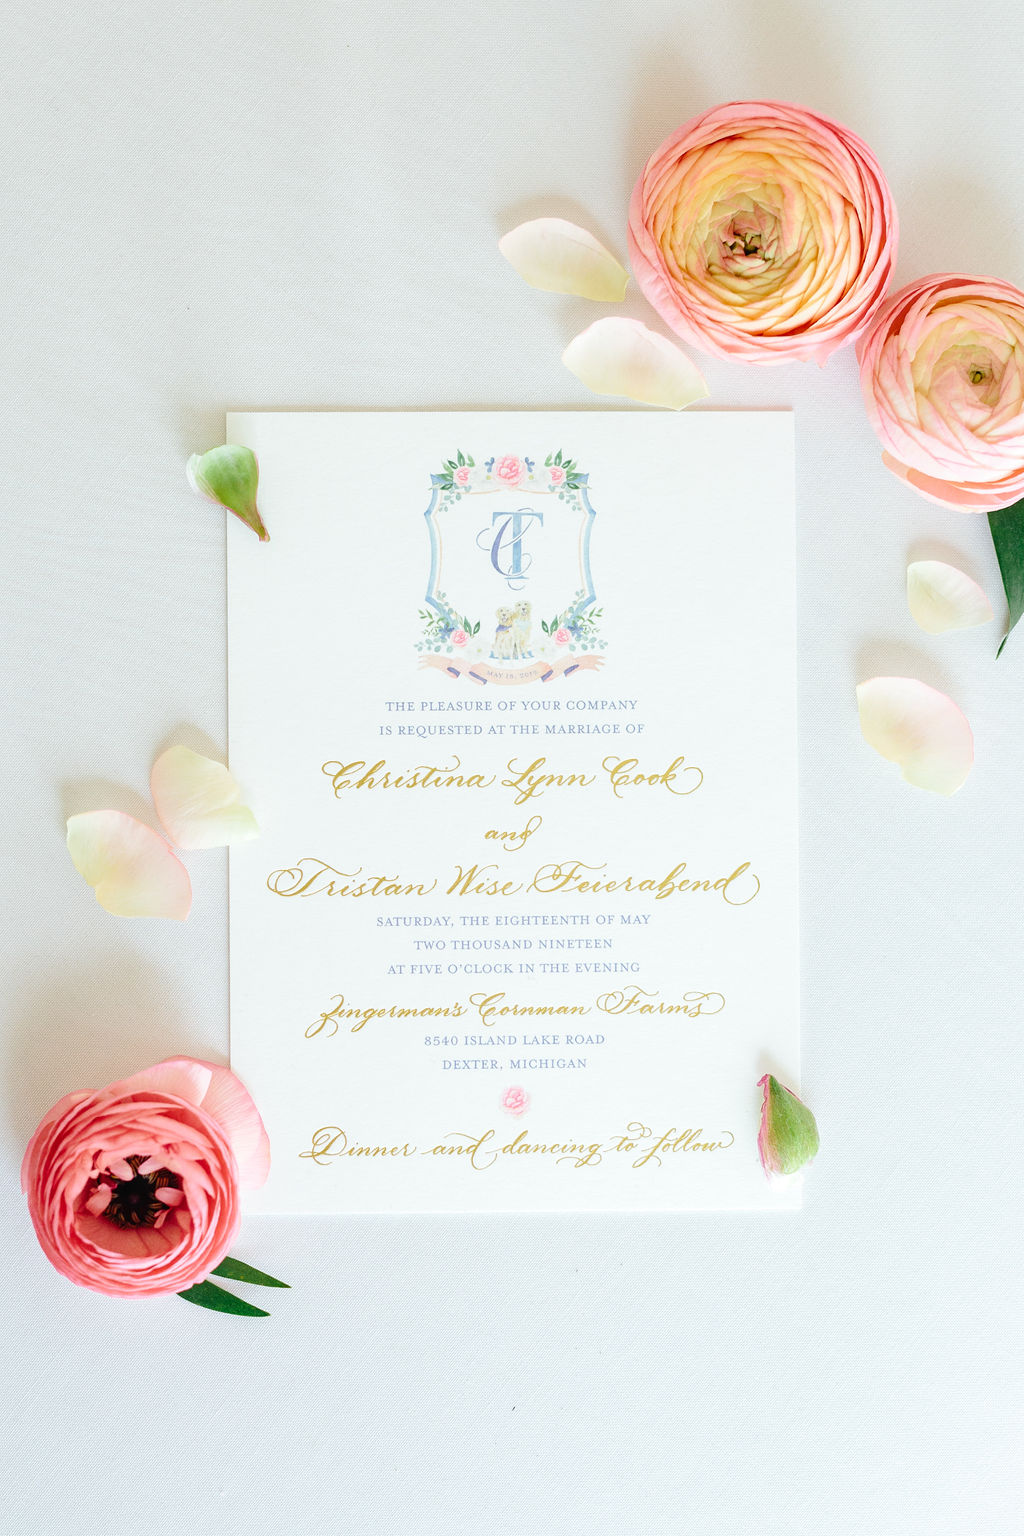 Custom wedding invitation with watercolor flowers and gold foil - Preppy spring wedding at Zingerman's Cornman Farms - Leah E. Moss Designs - photo by Katie Grace Photography